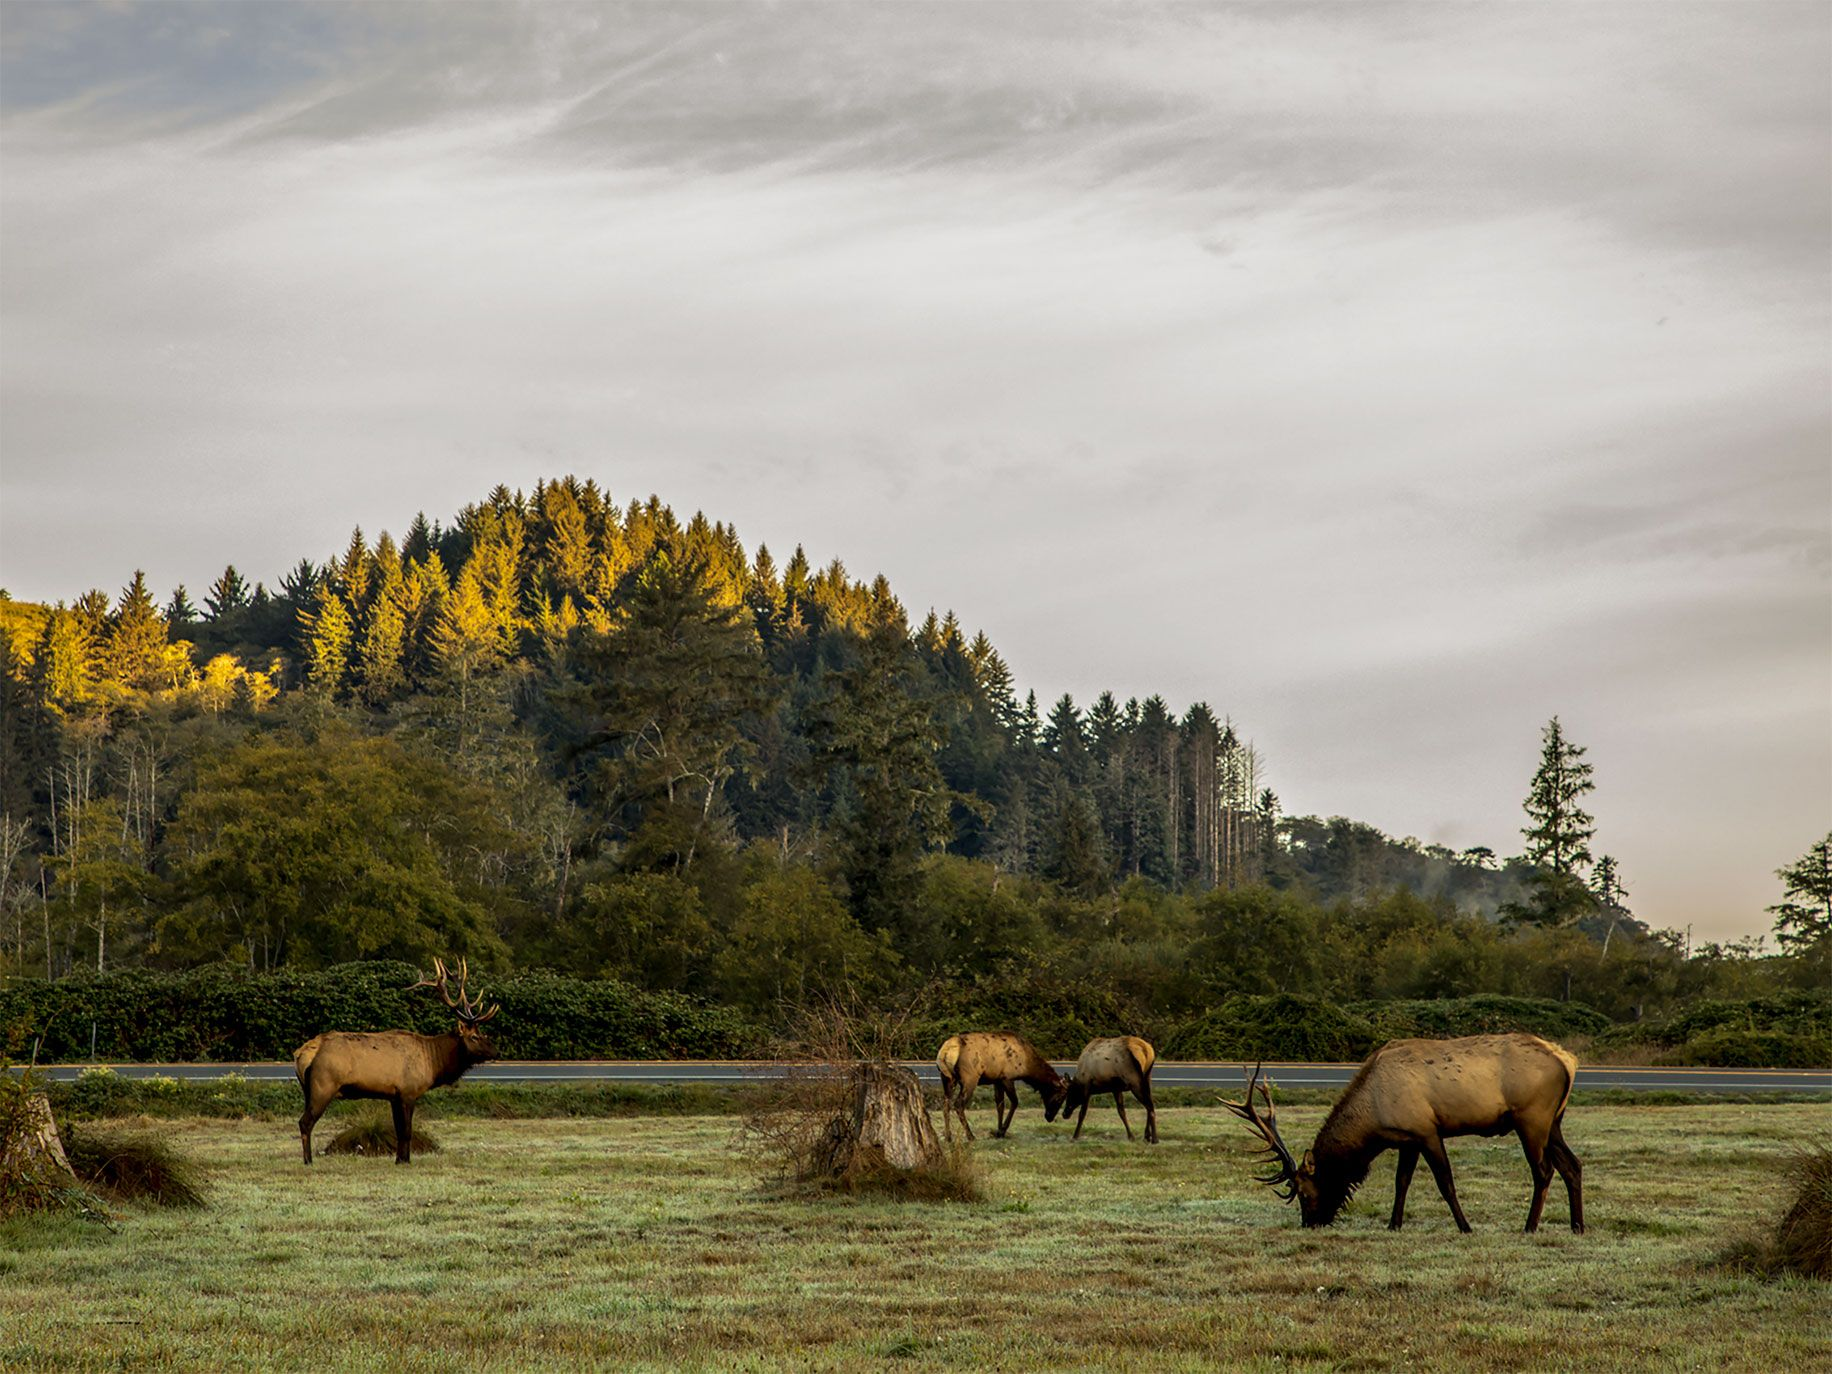 One of the world's largest herds of Roosevelt elk are native to Arcata. Here some of them graze in a meadow at the Country RV Resort and Campground in Trinidad, California.